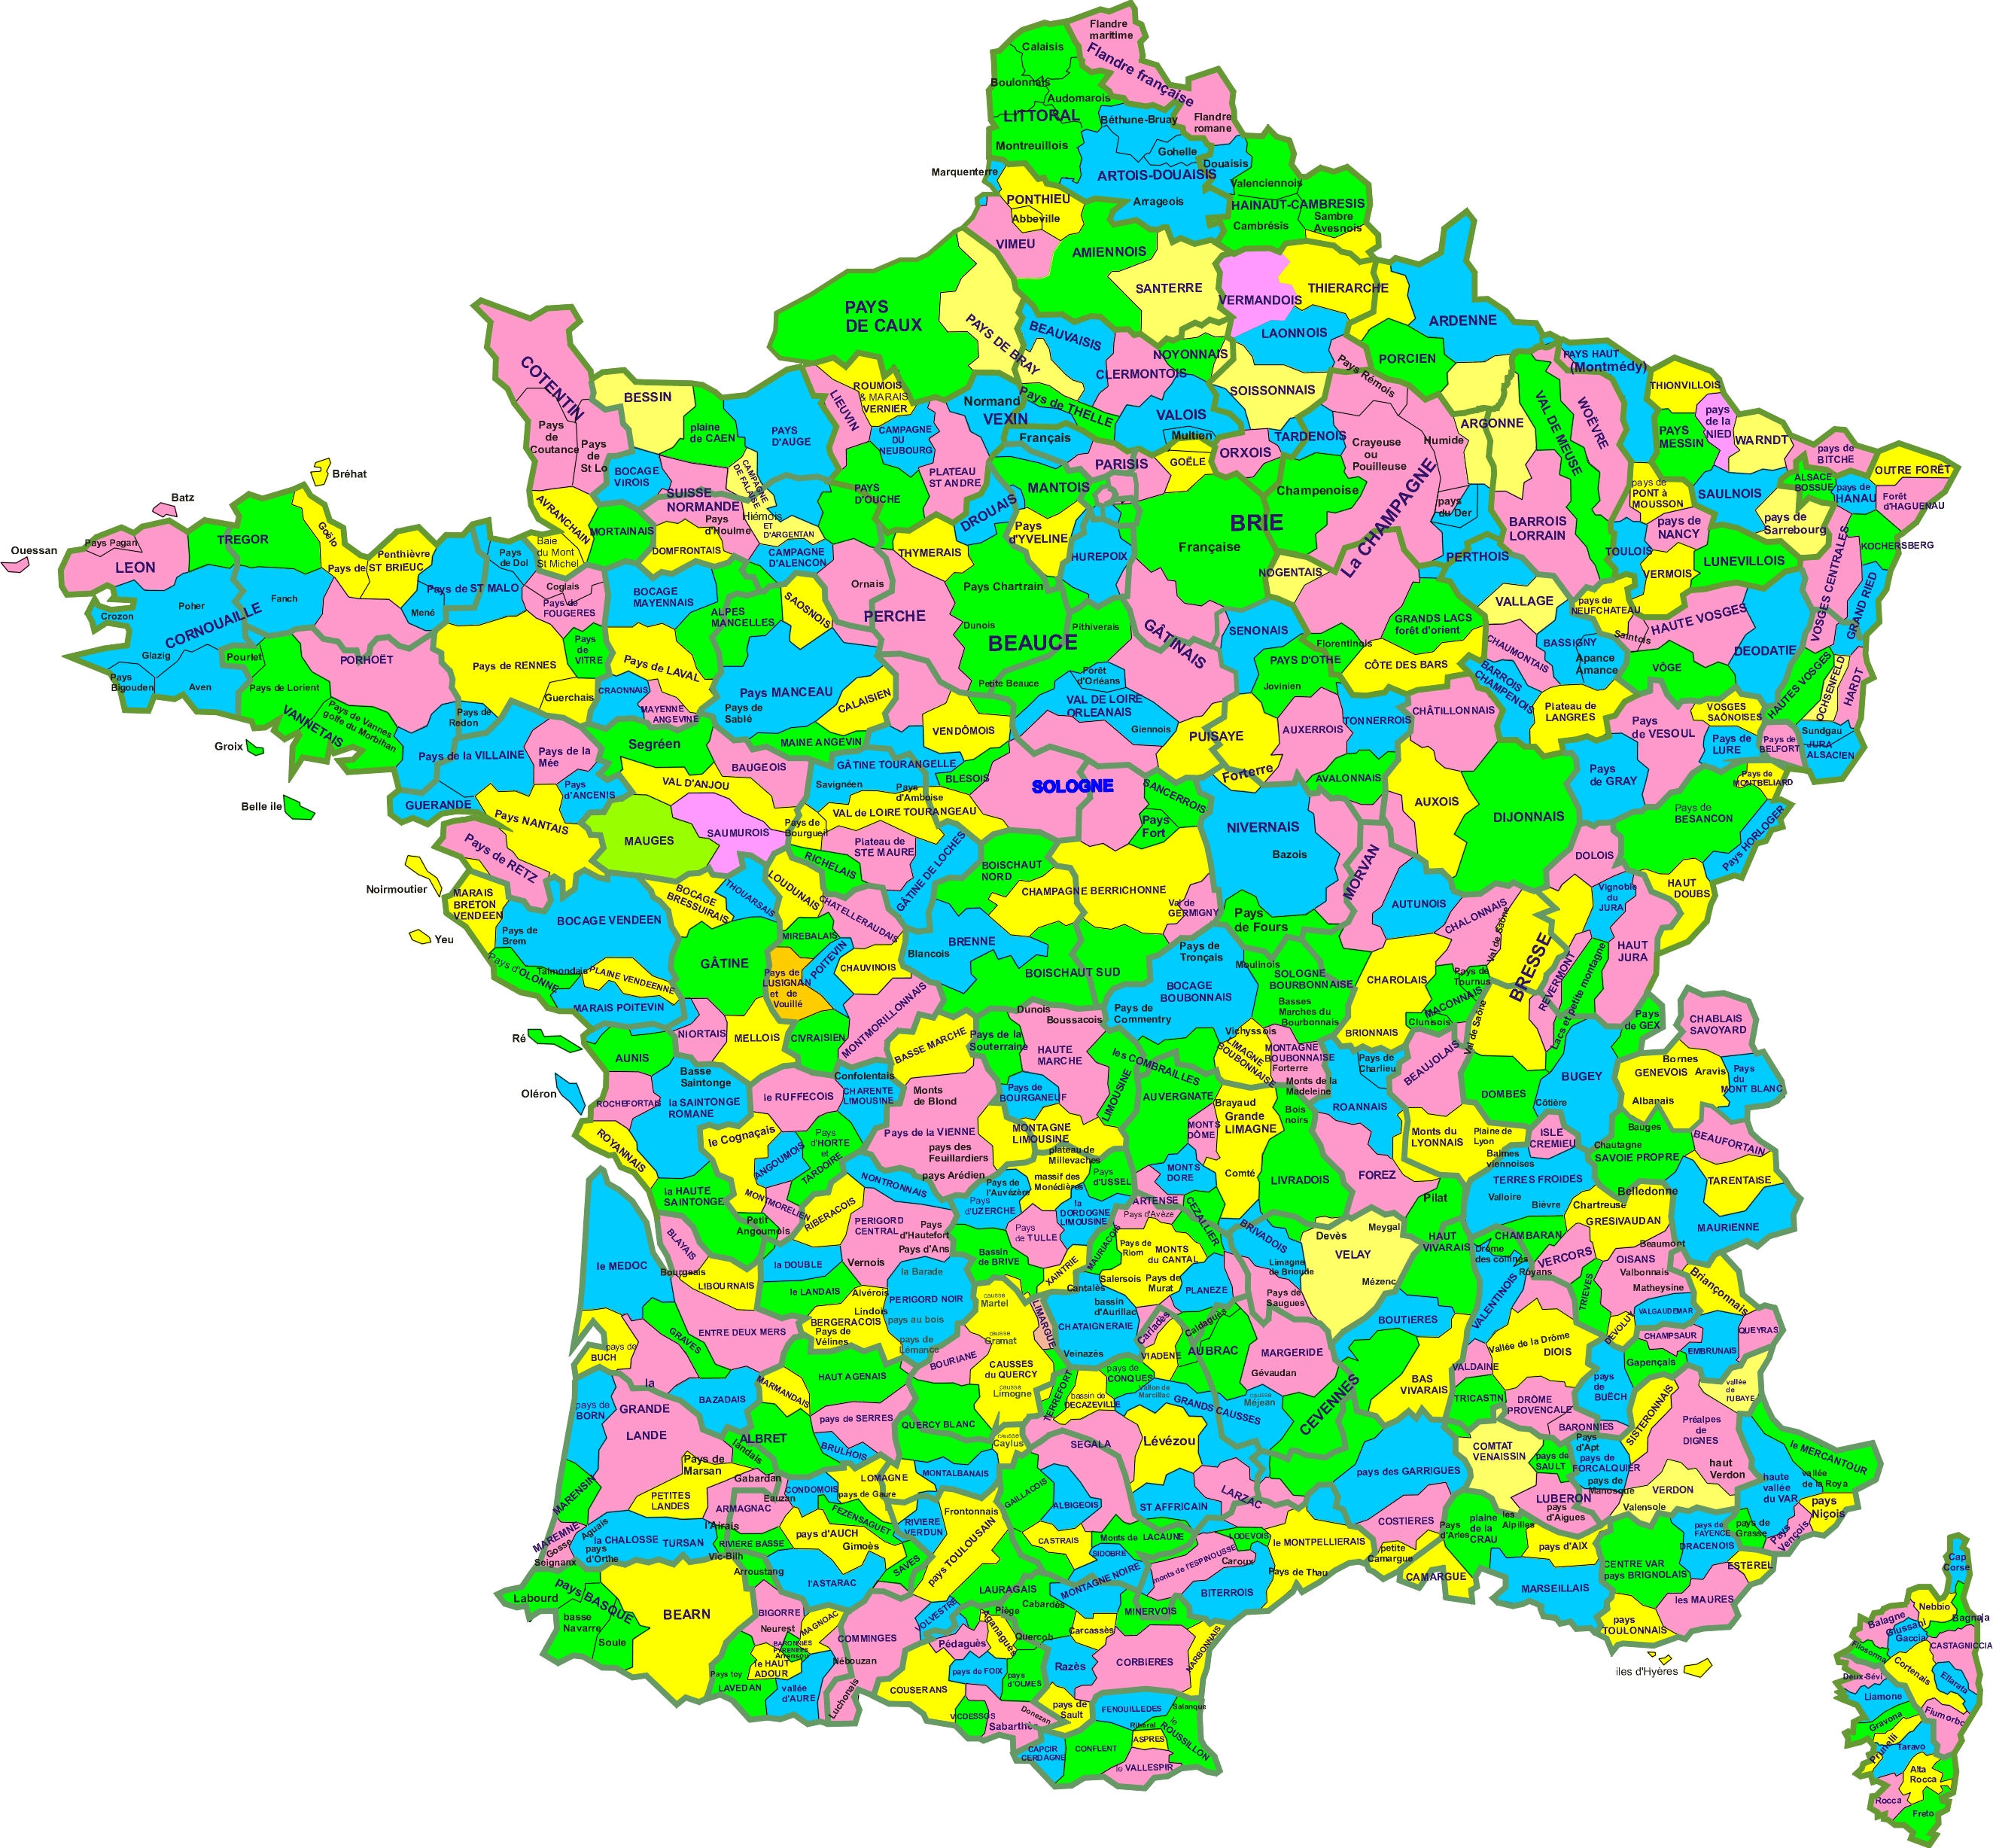 photo carte de france File:Carte des regions naturelles de france.   Wikimedia Commons